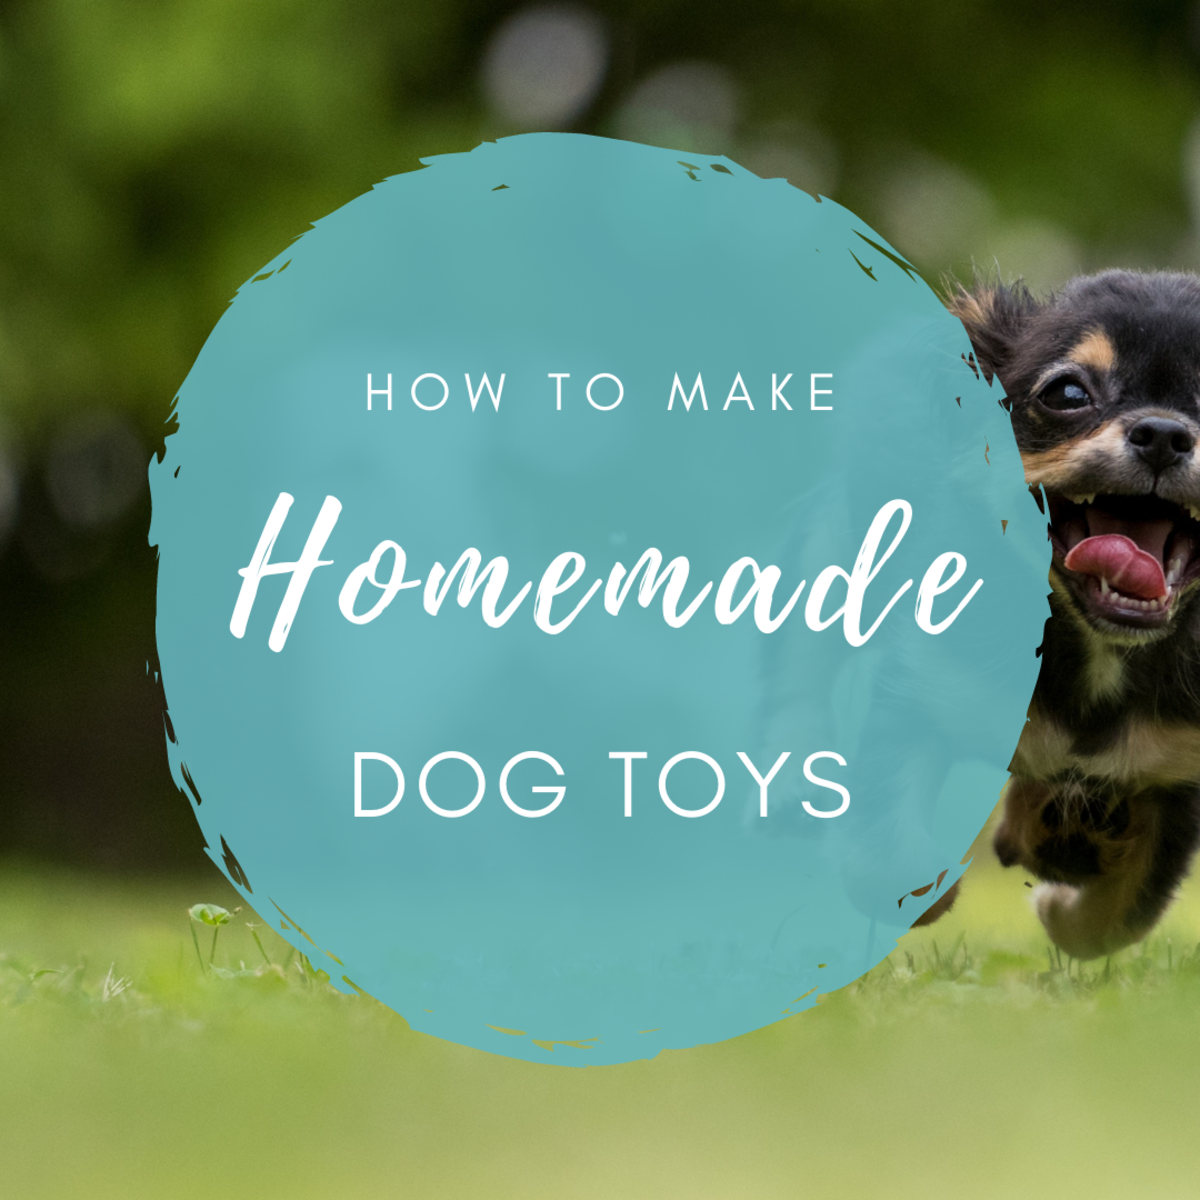 Homemade Dog Toy Instructions